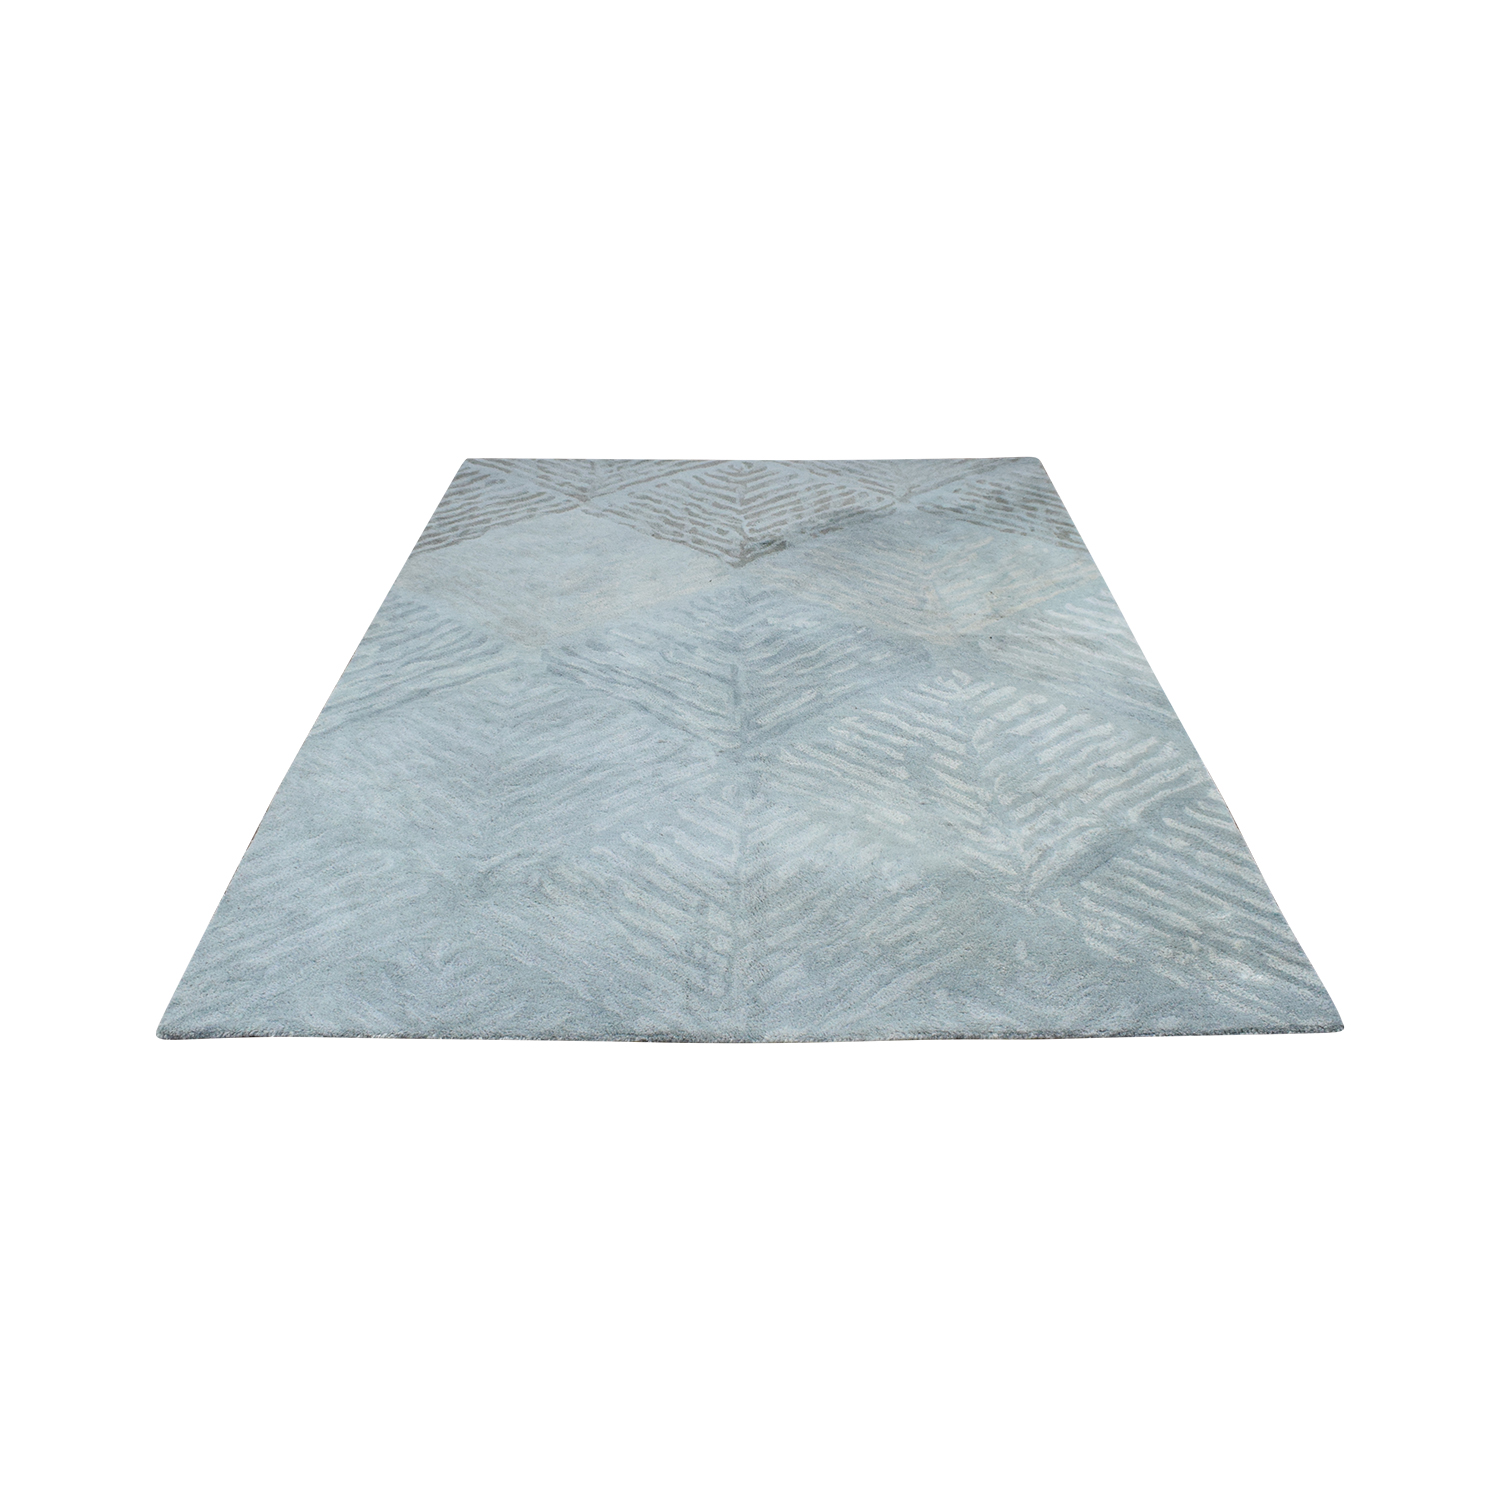 West Elm West Elm Nordic Diamond Rug Rugs